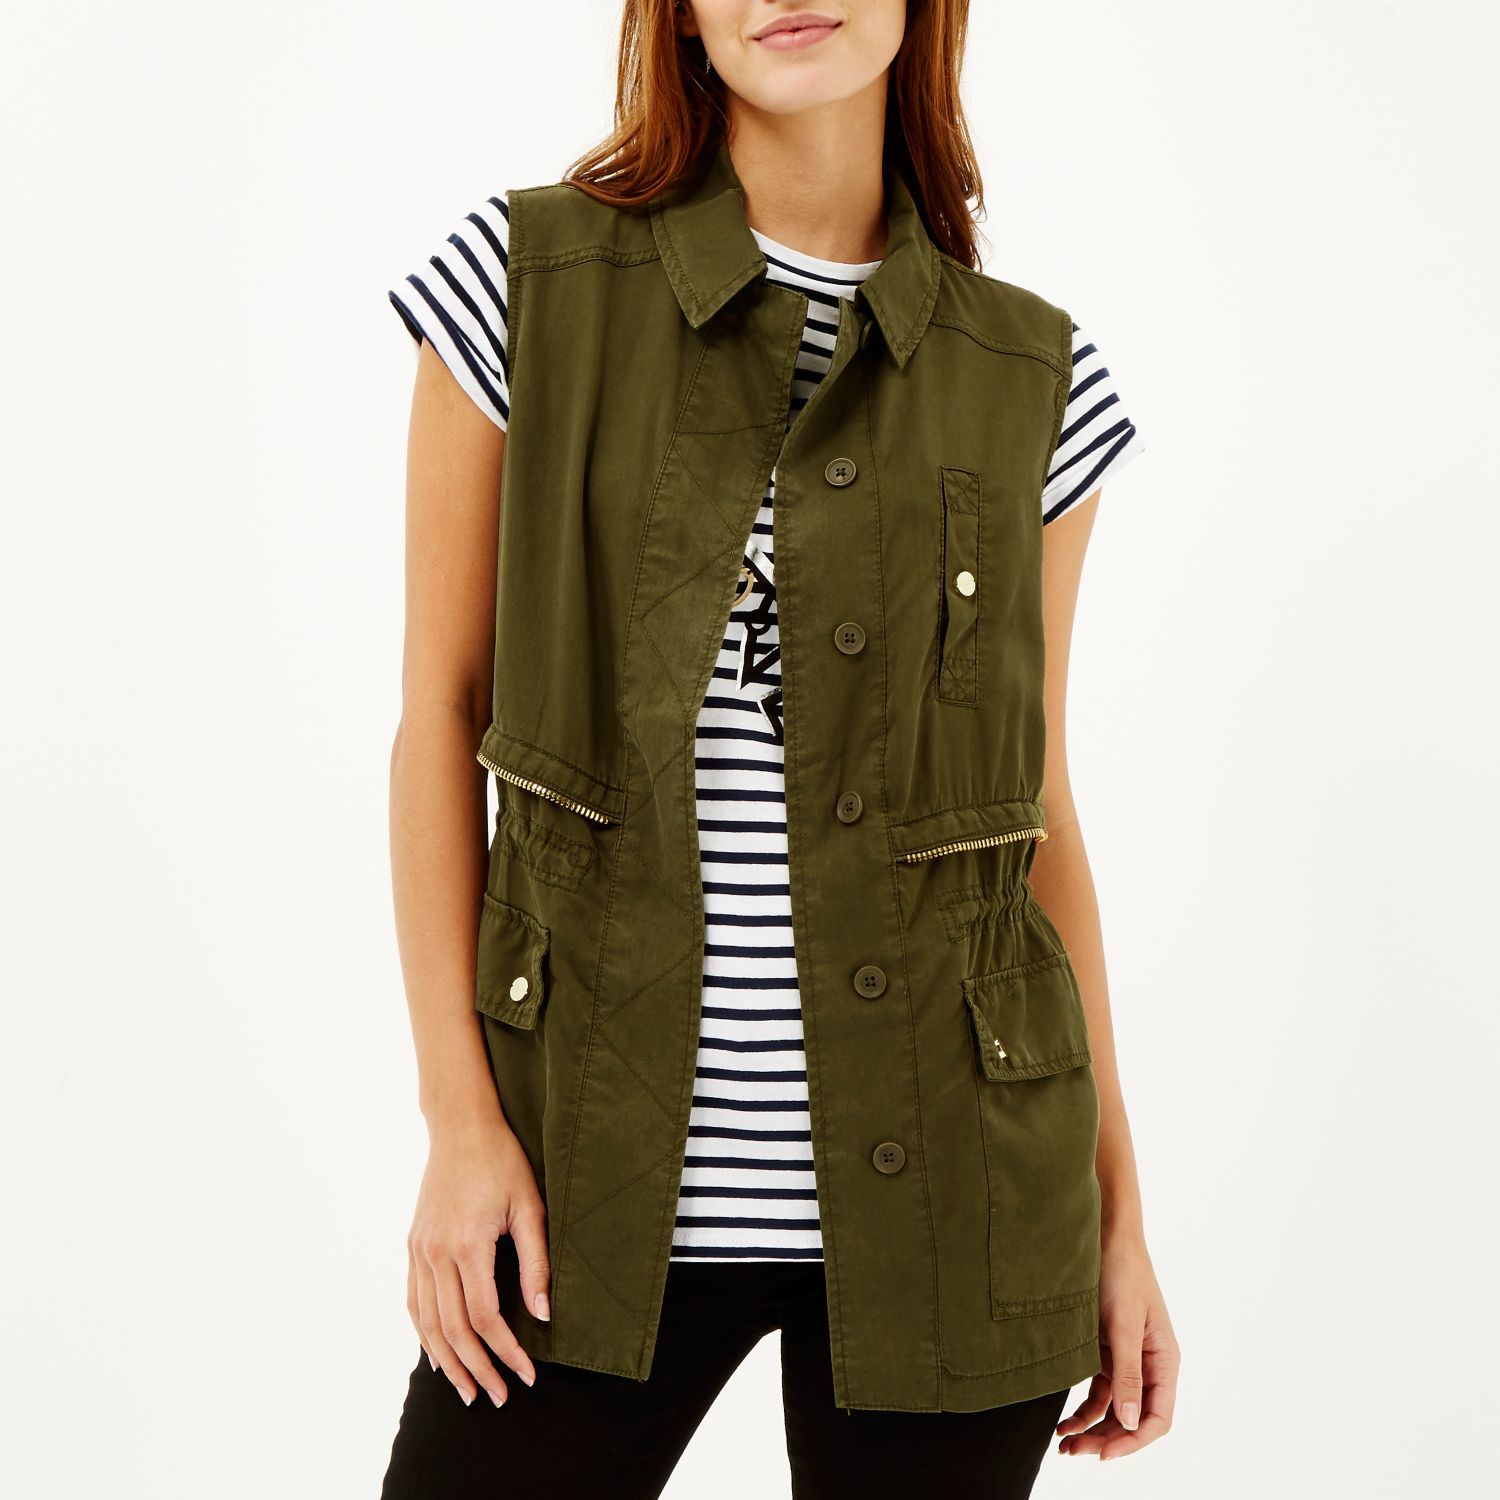 River island Khaki Sleeveless Military Jacket in Natural | Lyst